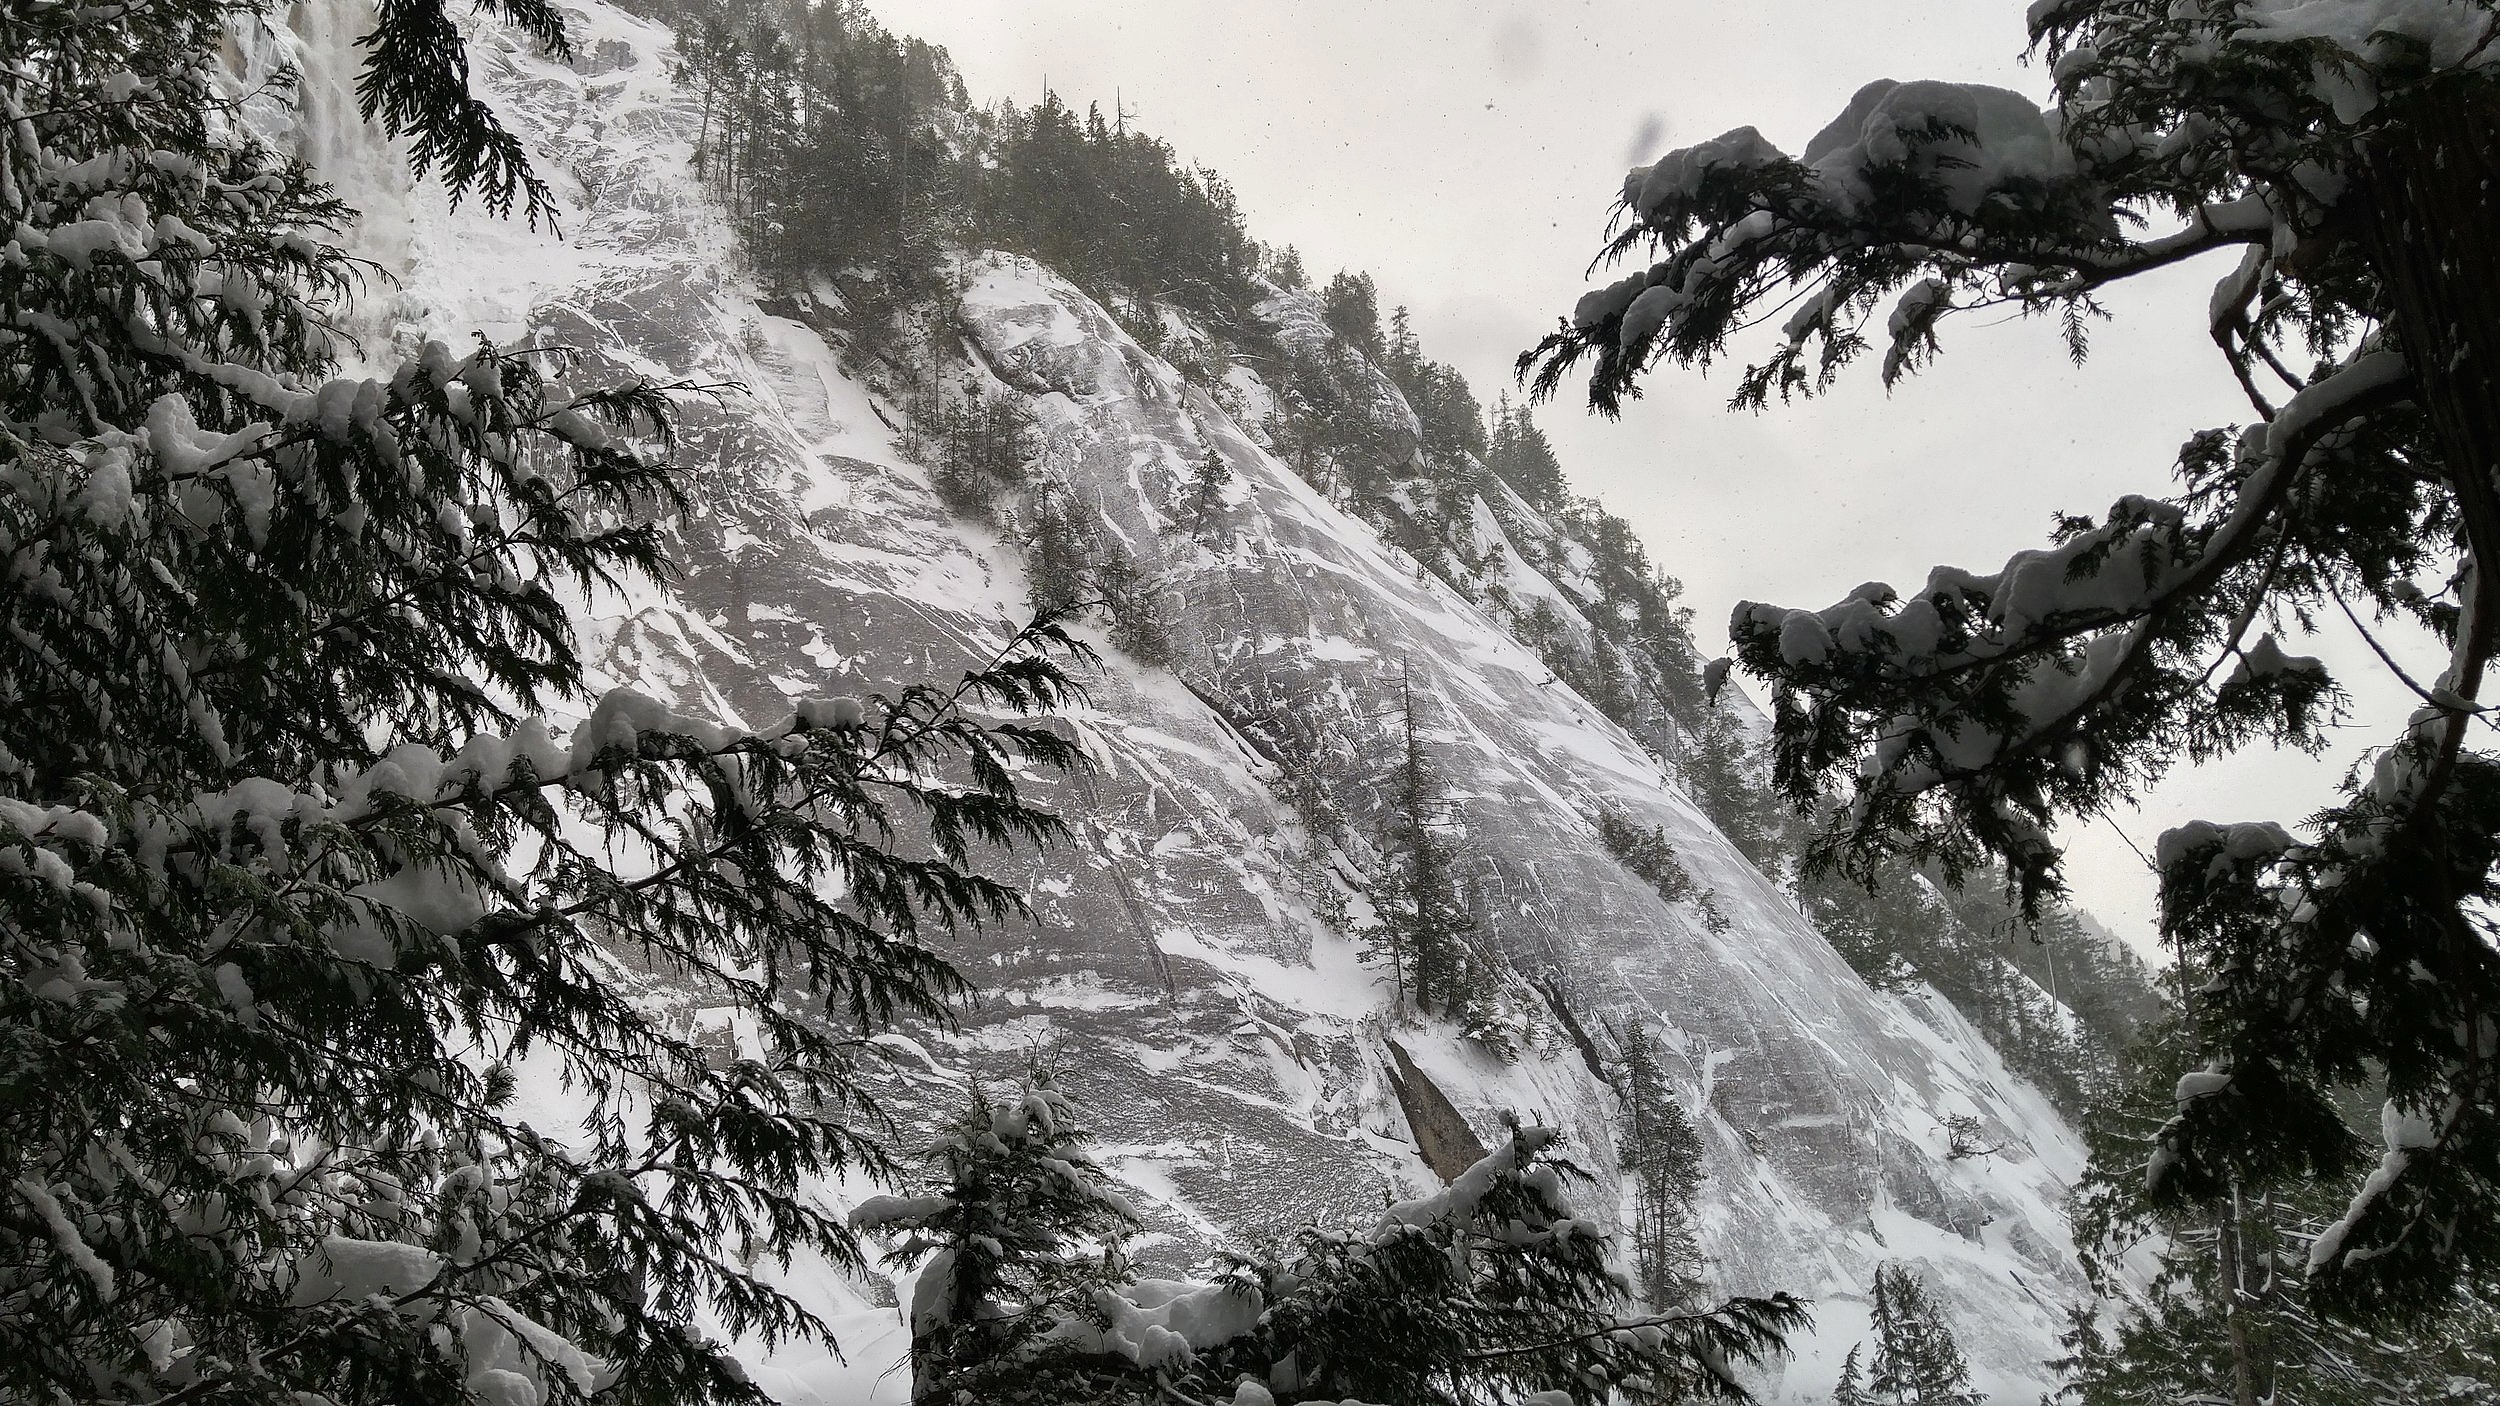 There had been a lot of snow, and the roads to Squamish were terrible. We arrived, hoping to go up the gondola and hike at the top of the mountain, but because of the terrible weather, the gondola was closed.